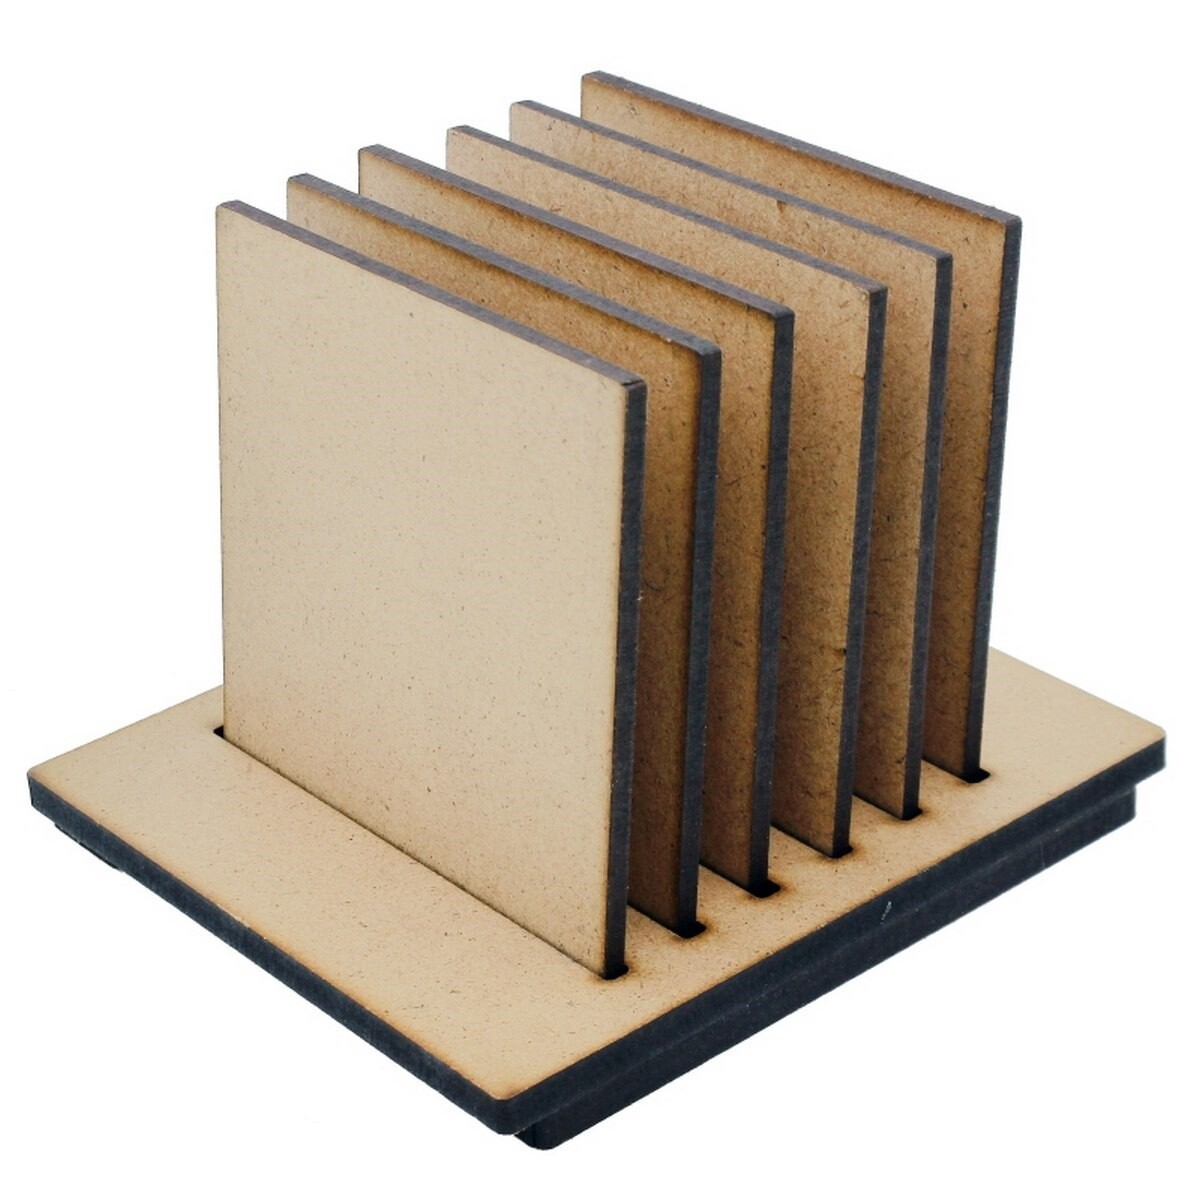 Coaster with Stand MDF Square 6Pcs Set (for Craft/Activity/Decoupage/Painting/DIY)